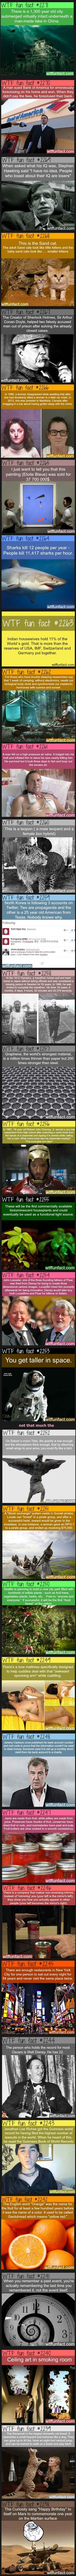 WTF Facts.. here we go - Imgur